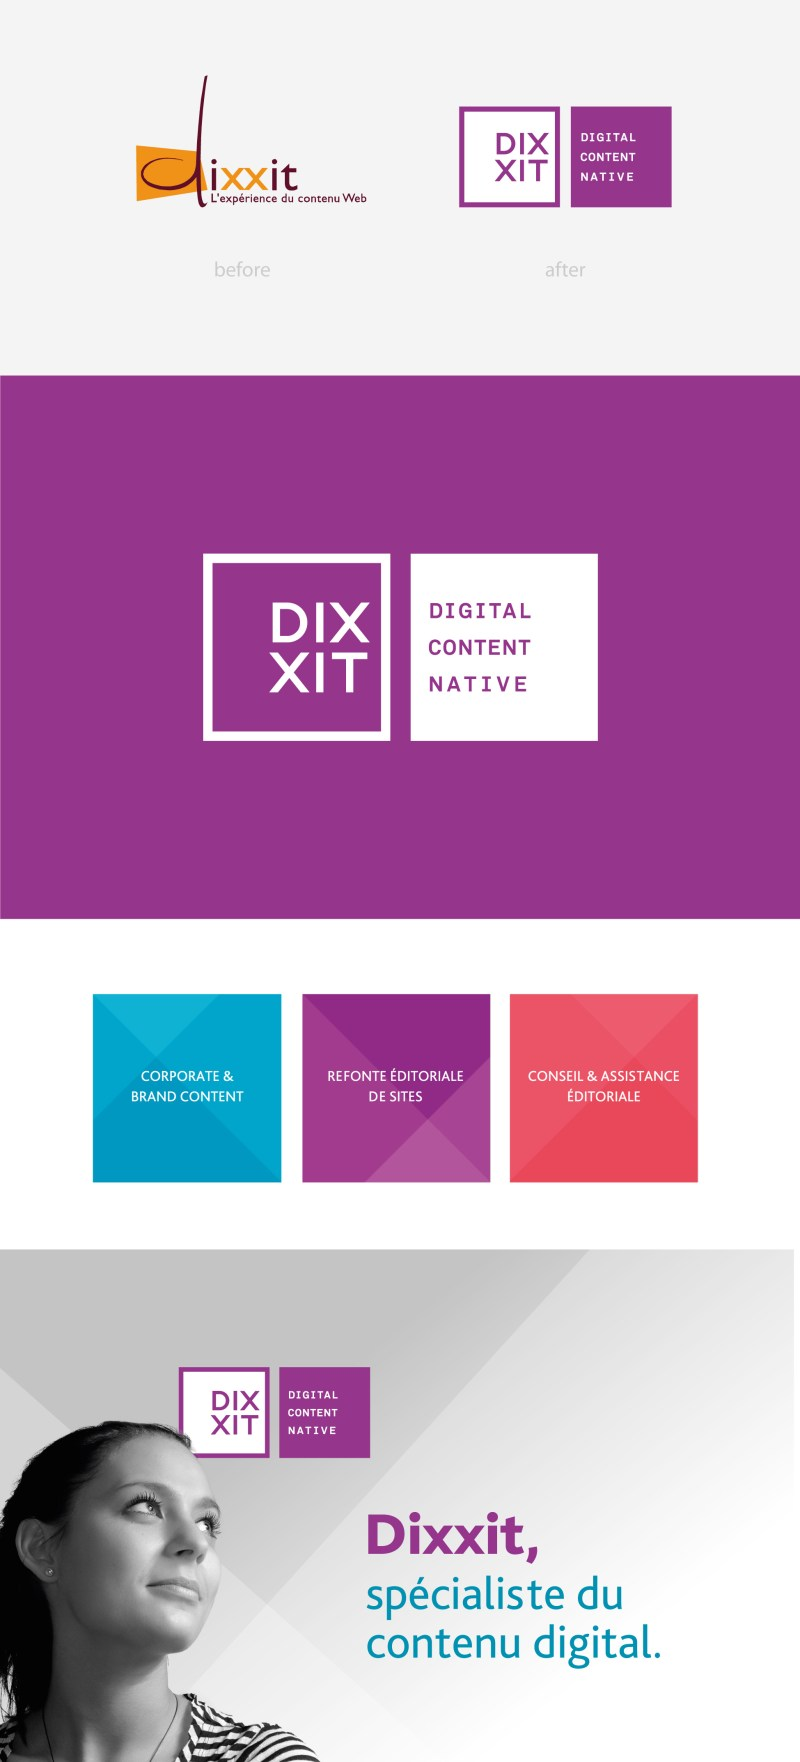 behance-dixxit-web1